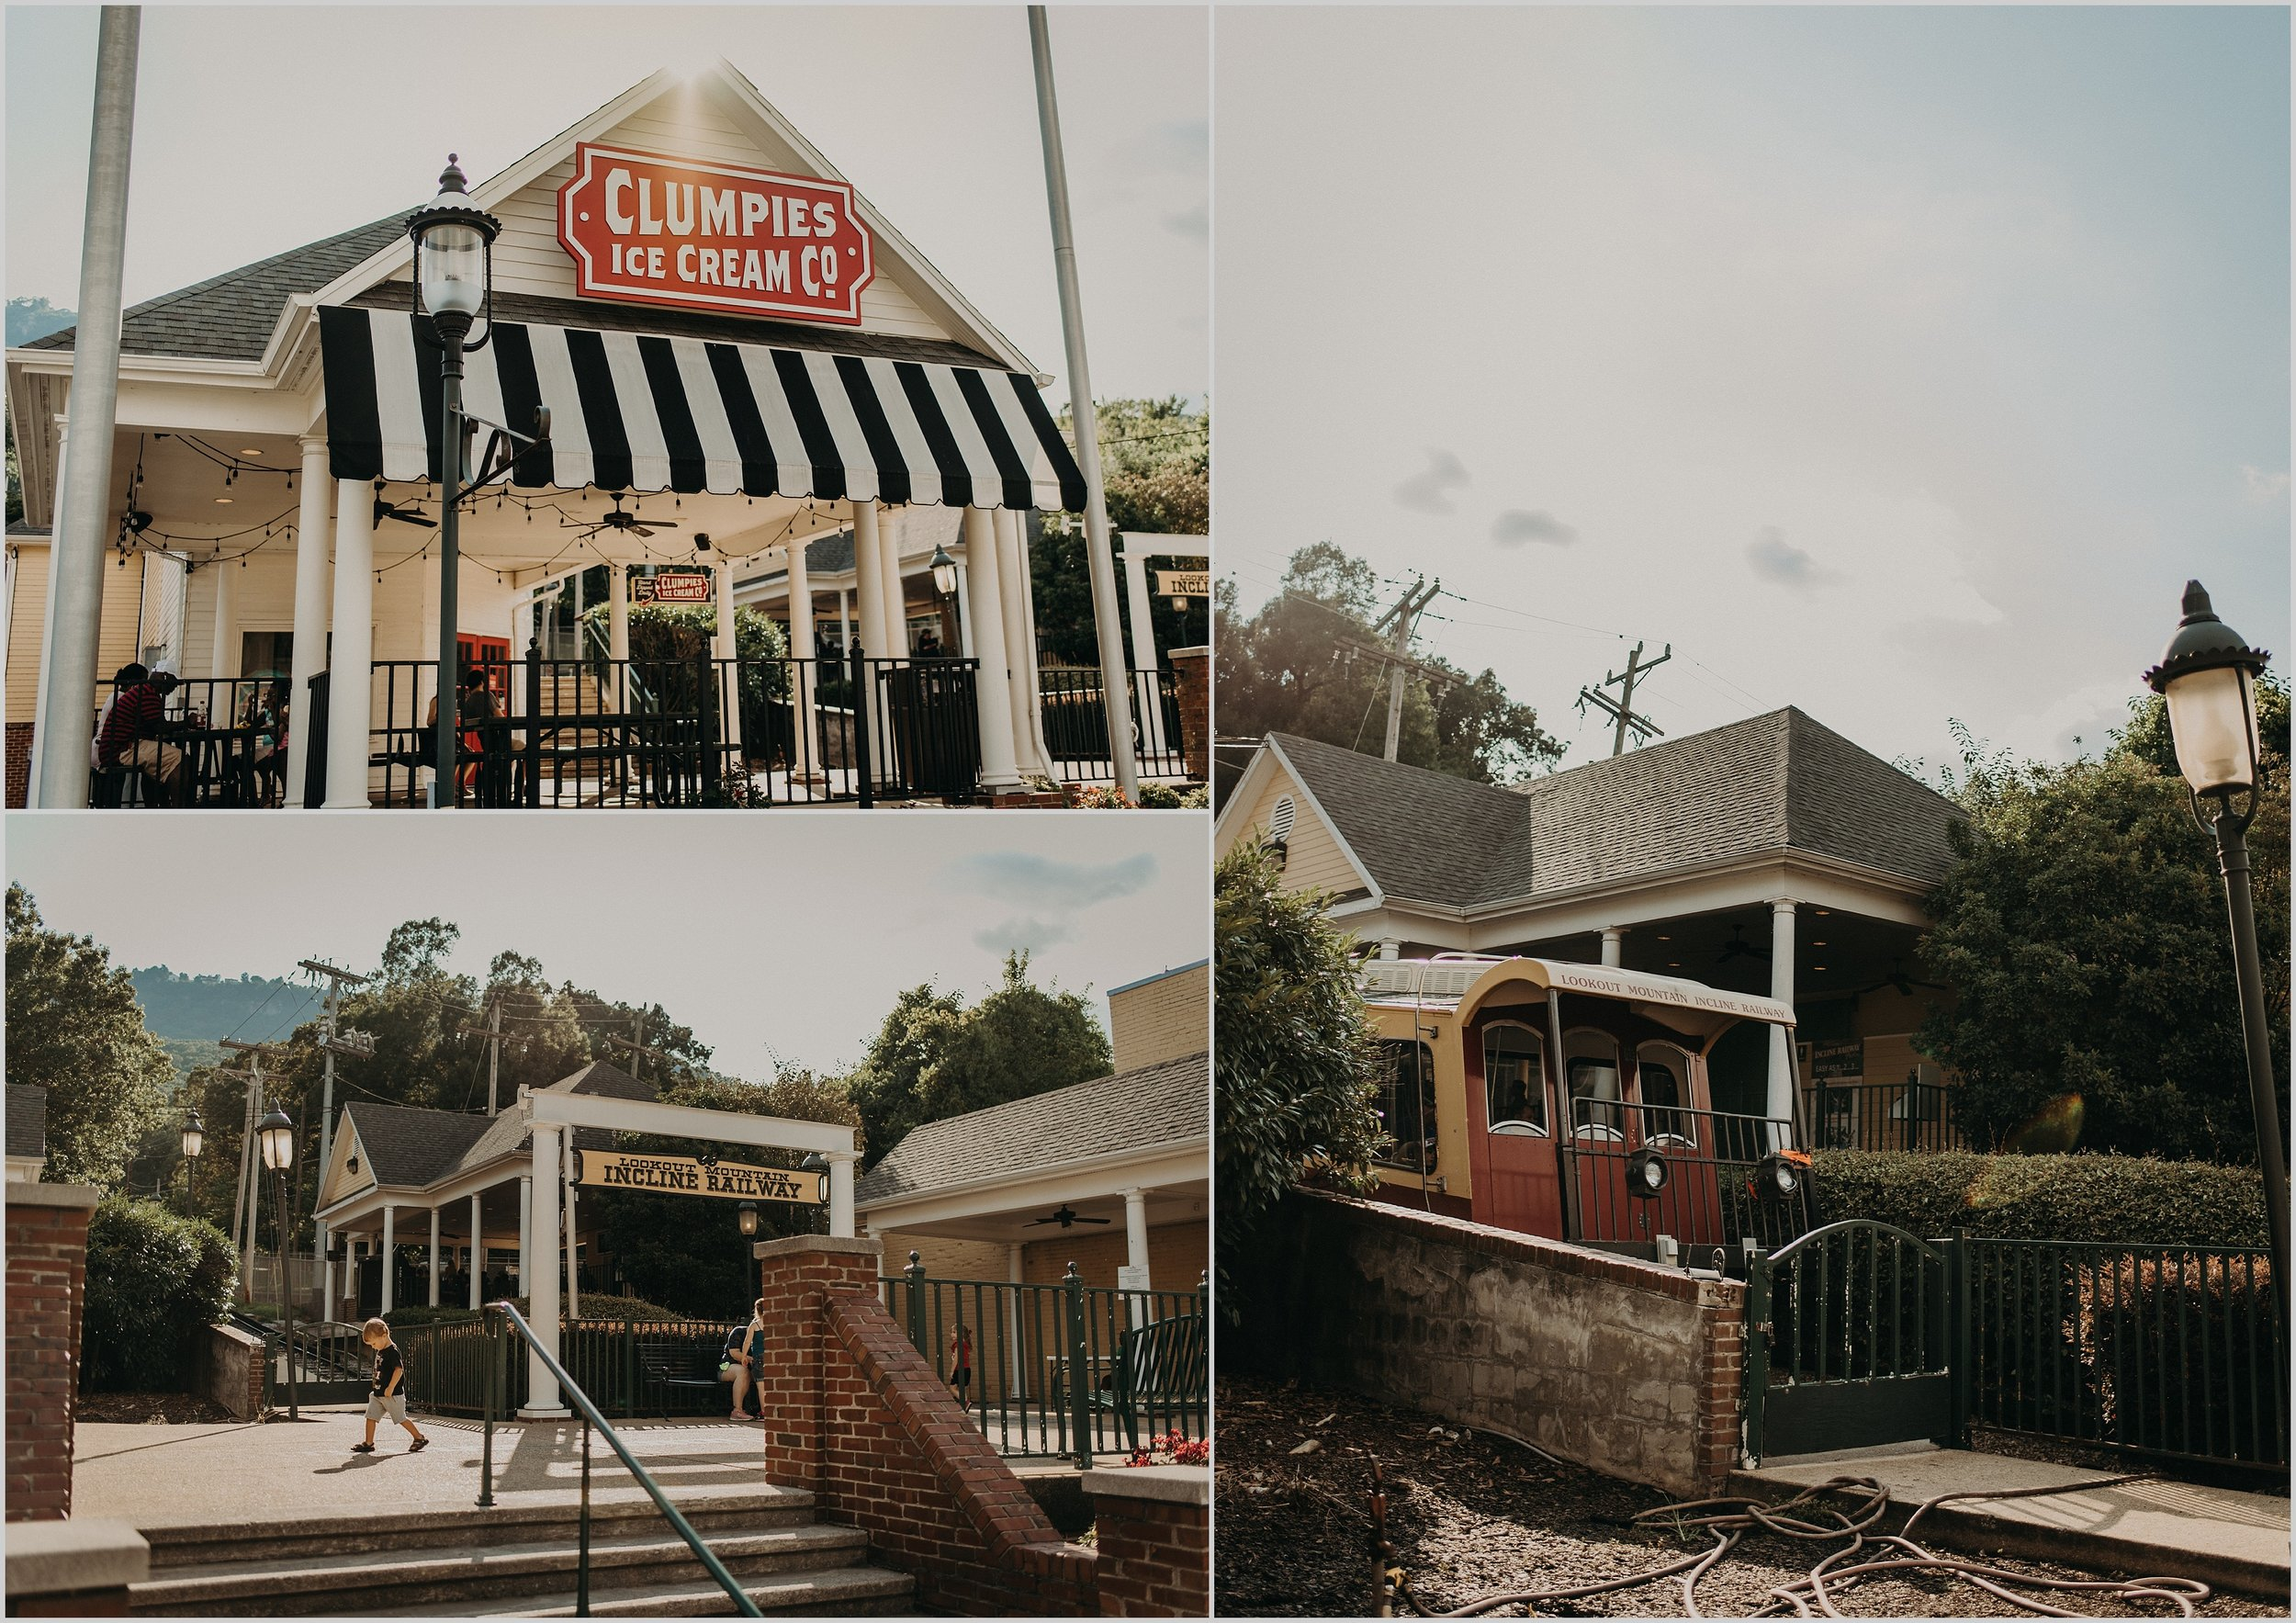 Historic St. Elmo's town center with Clumpie's Ice Cream and the Famous Incline Railway